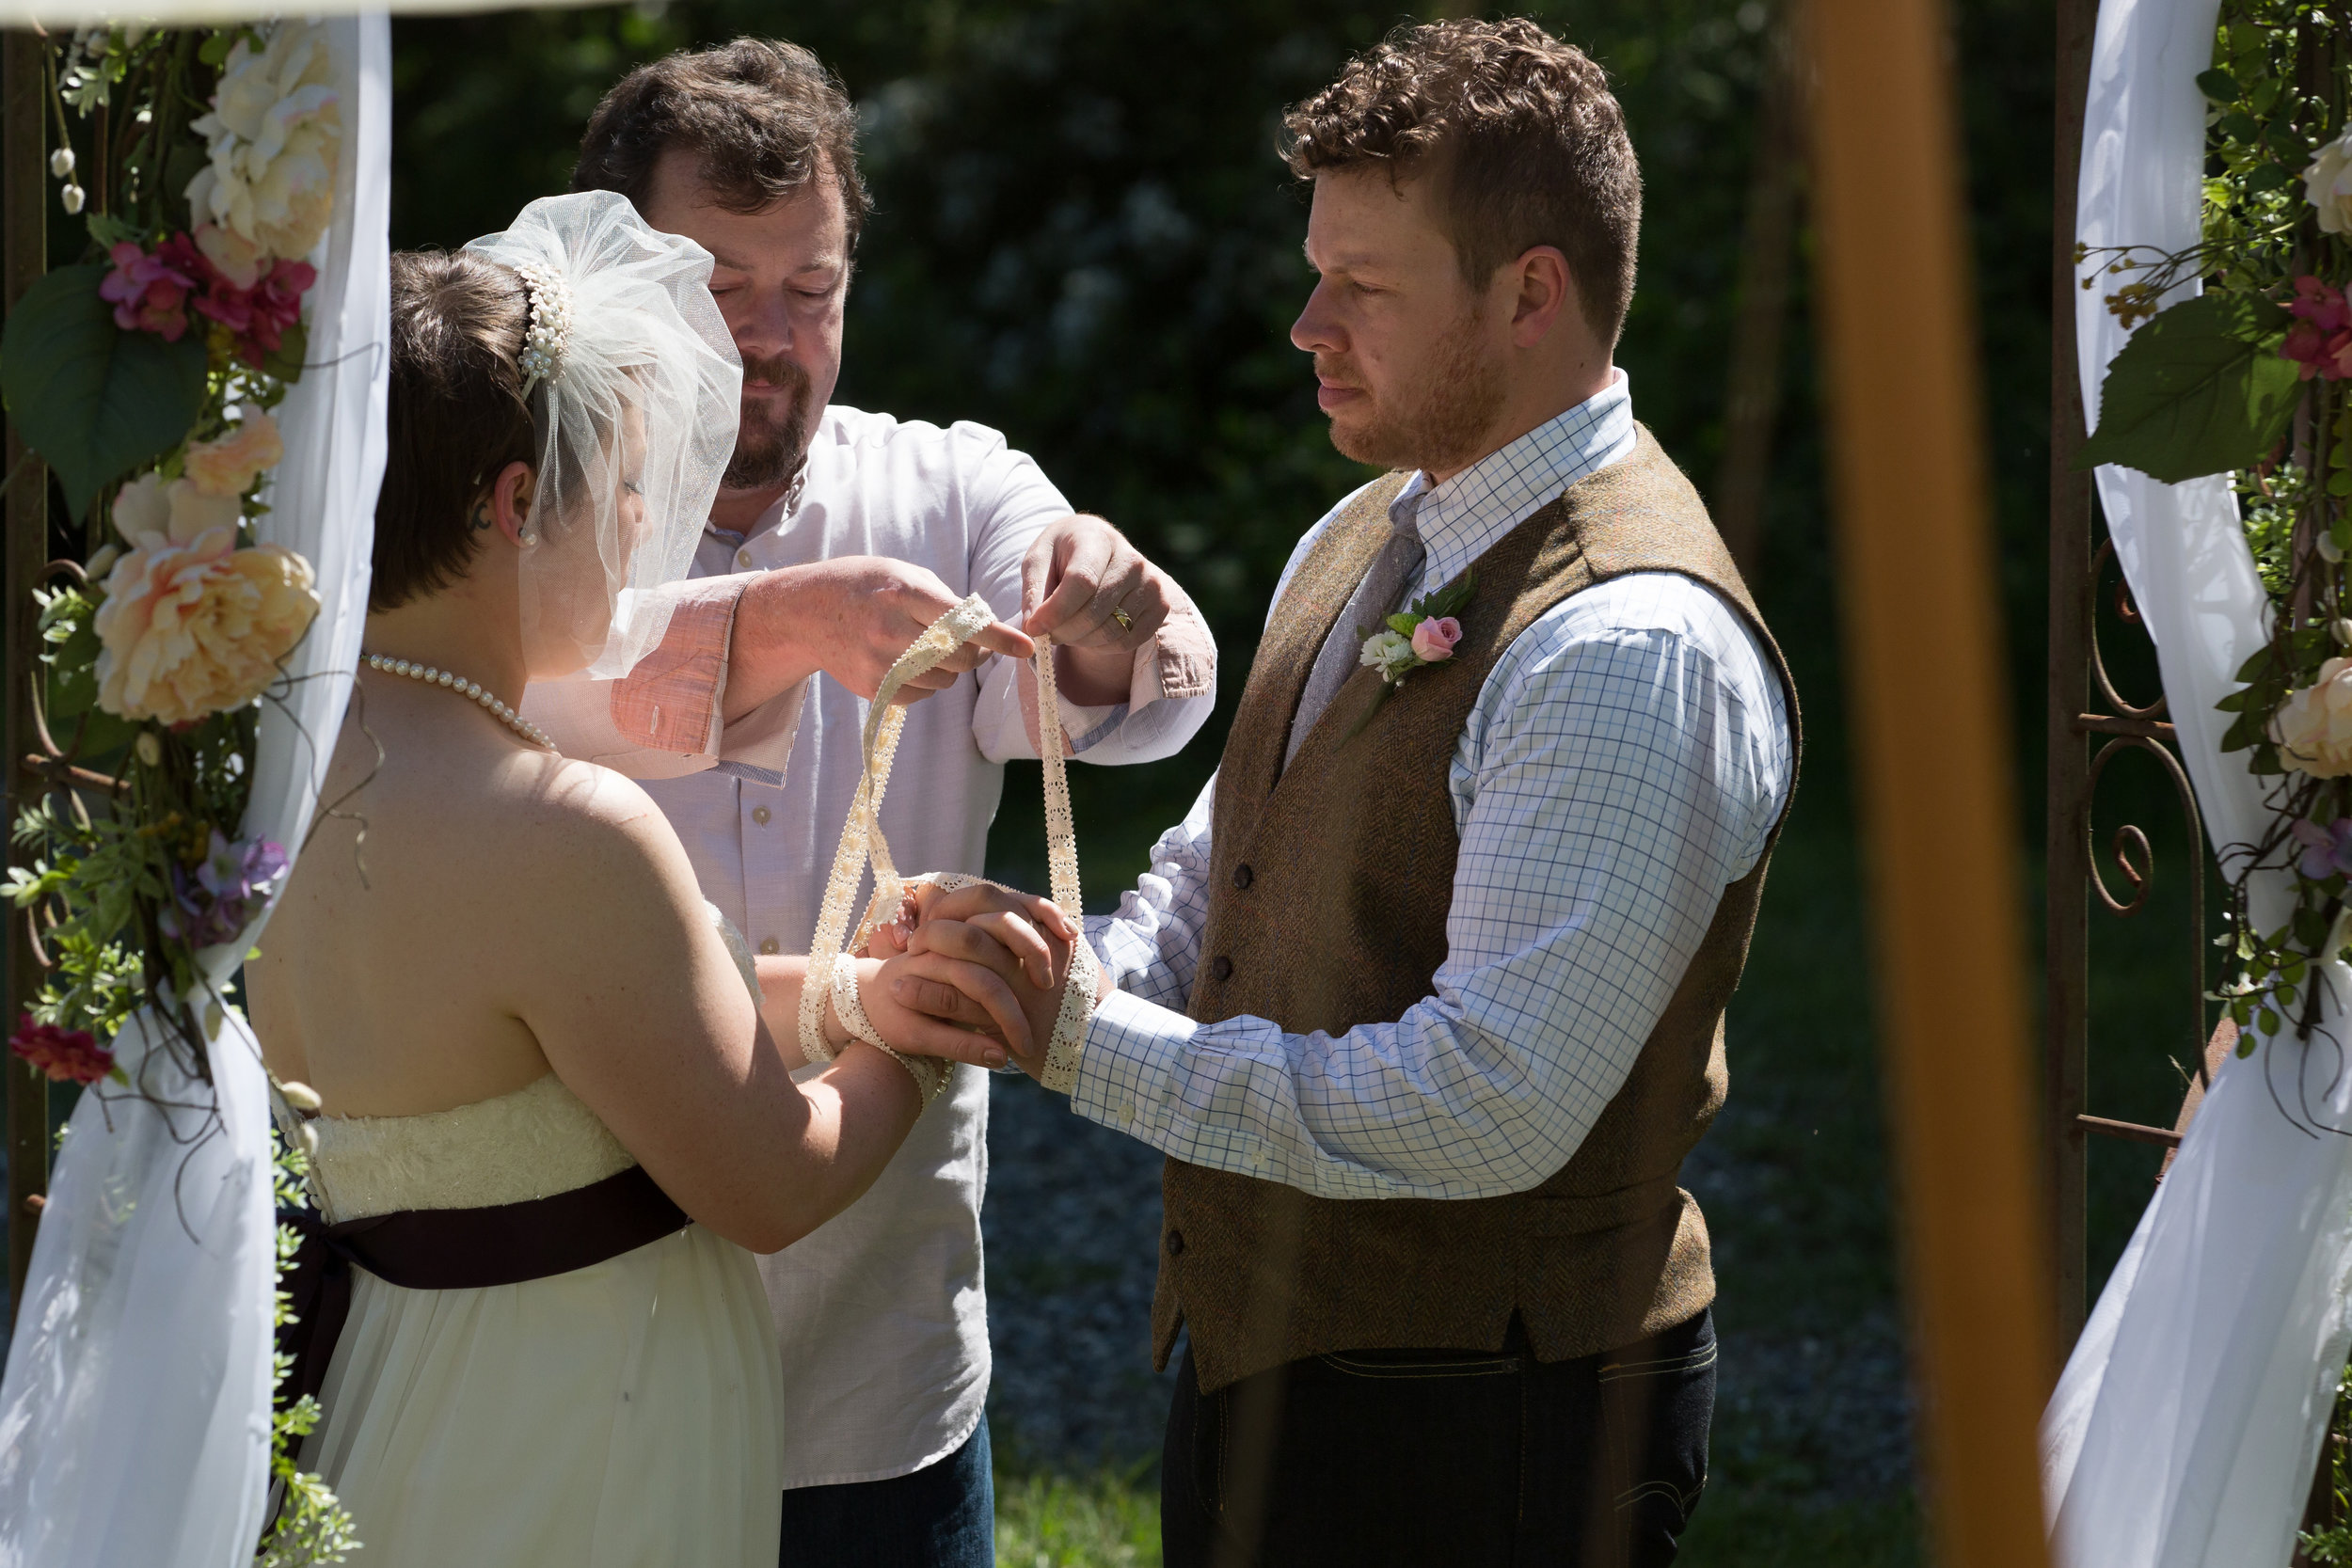 Literally tying the knot. The hand fasting signifies the joining of the two spirits while the rings signify the physical joining of the couple. Both traditions were included in this ceremony. Photograph courtesy of Mike and Barbara MacLeod of Studio MacLeod,http://www.studiomacleod.photos/